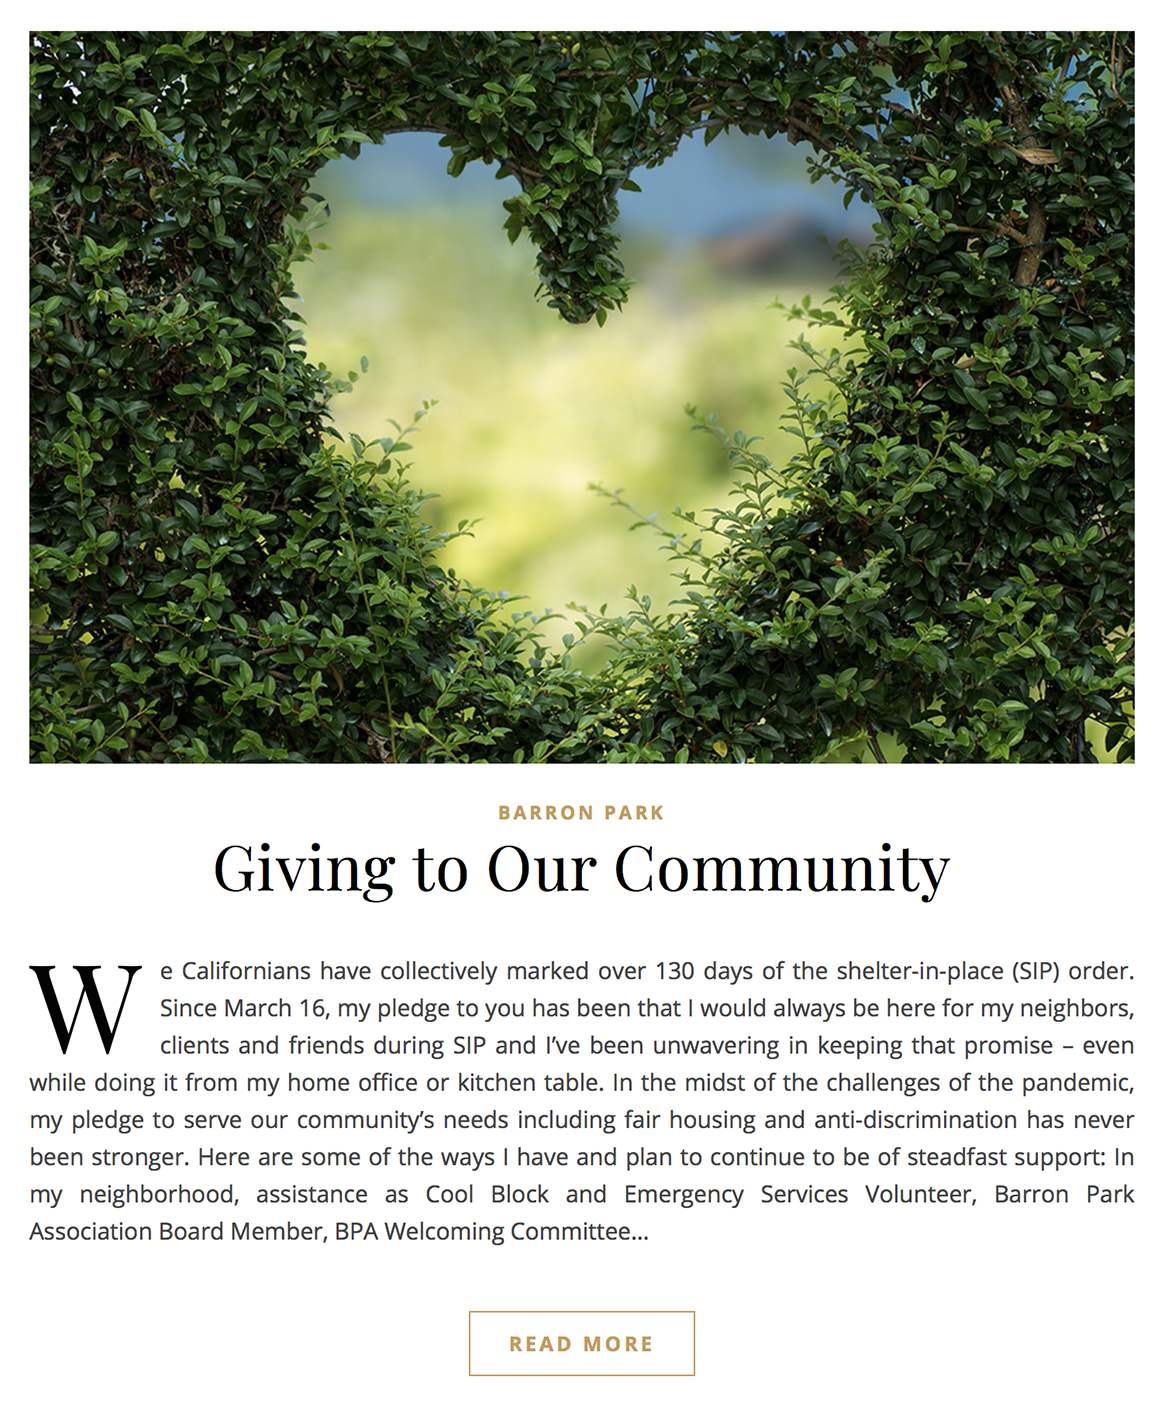 Giving to Our Community